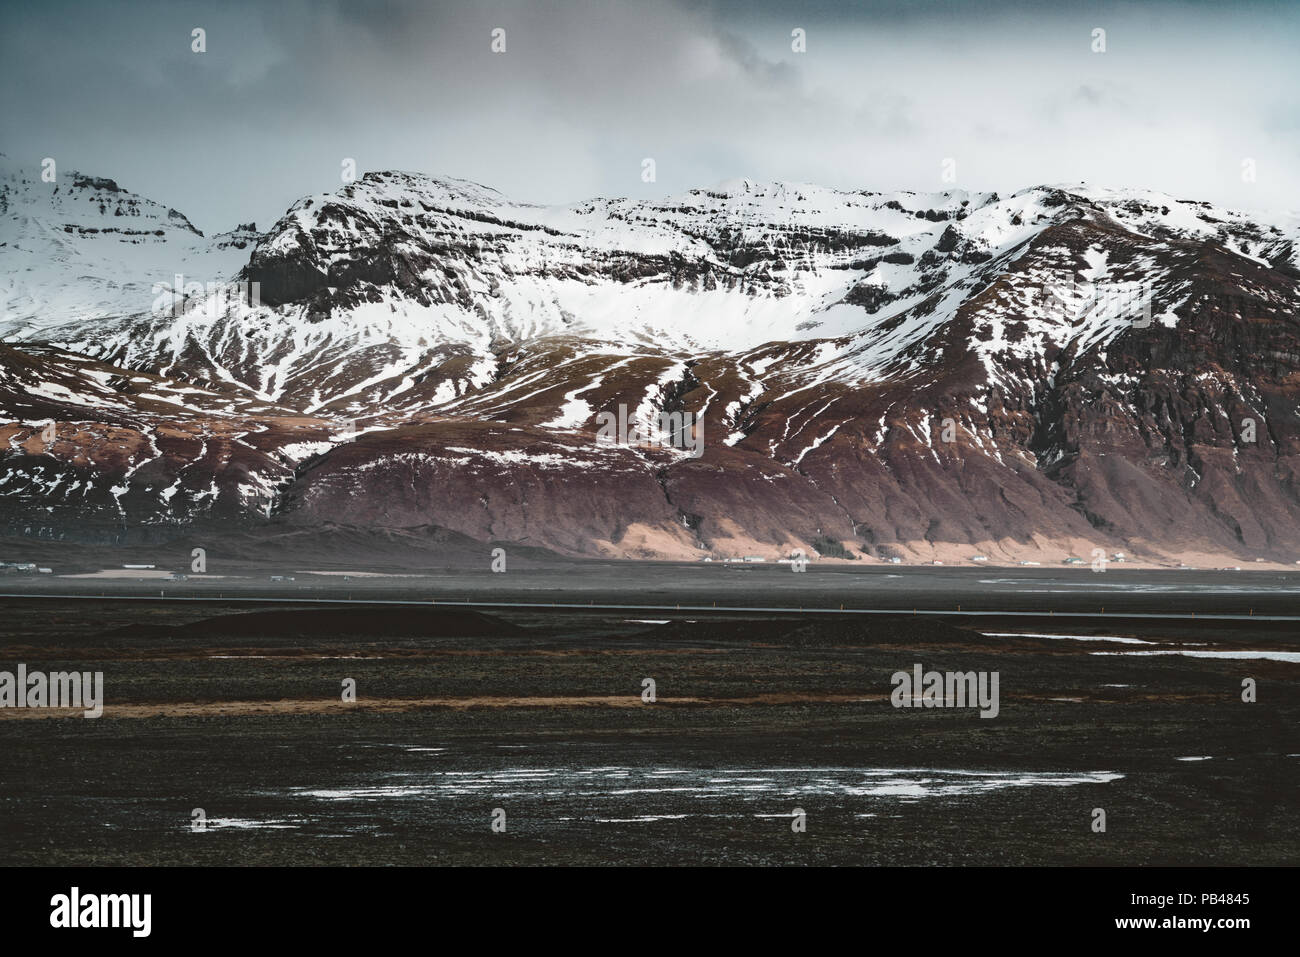 Street Highway Ring road No.1 in Iceland, with view towards mountain. Southern side if the country. Stock Photo